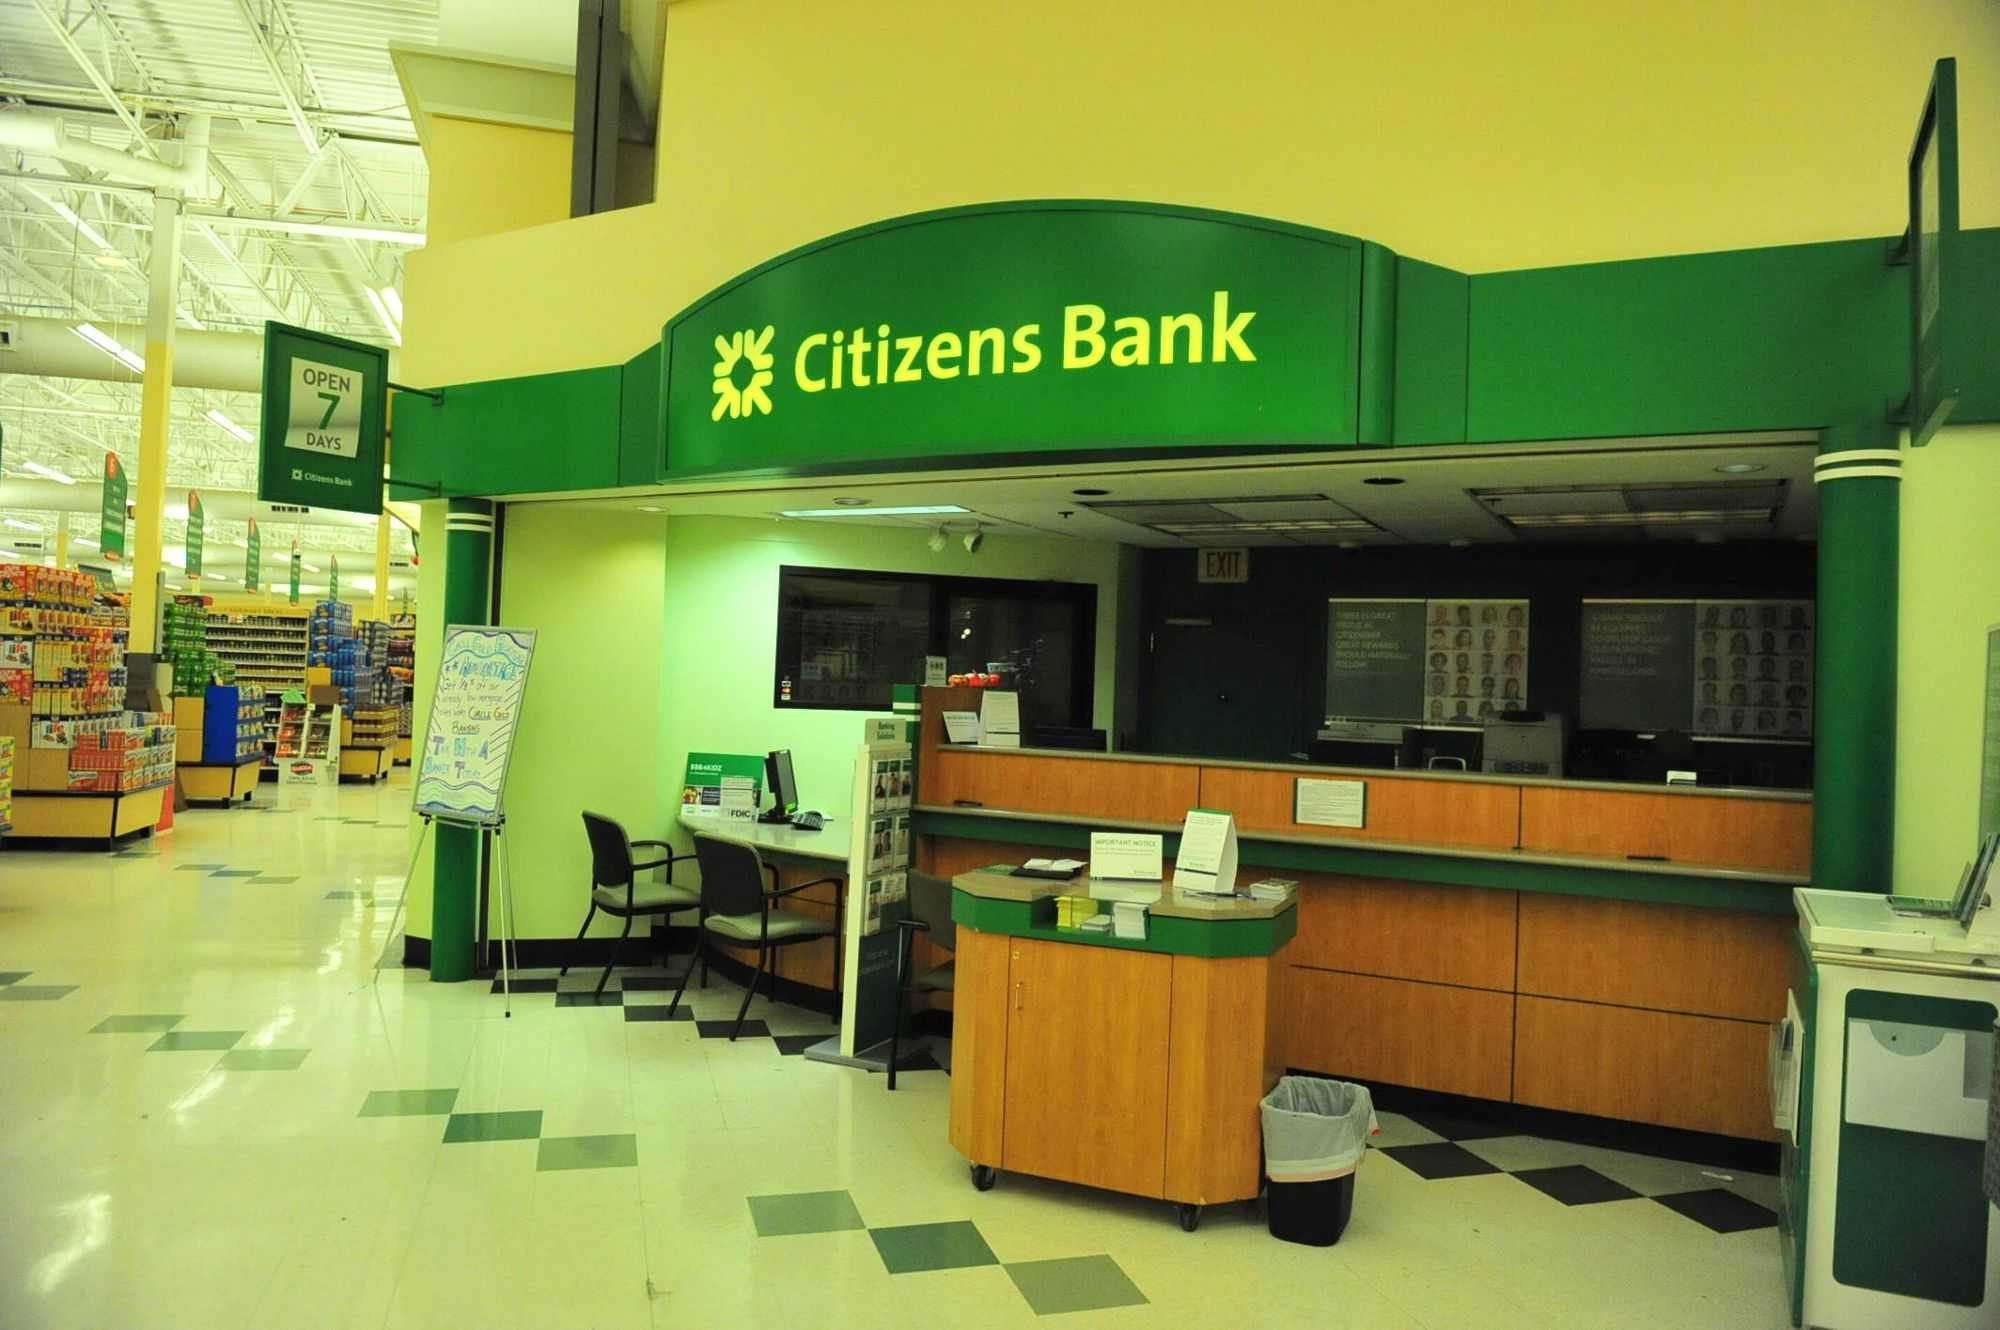 citizens bank locations, nearest citizens bank